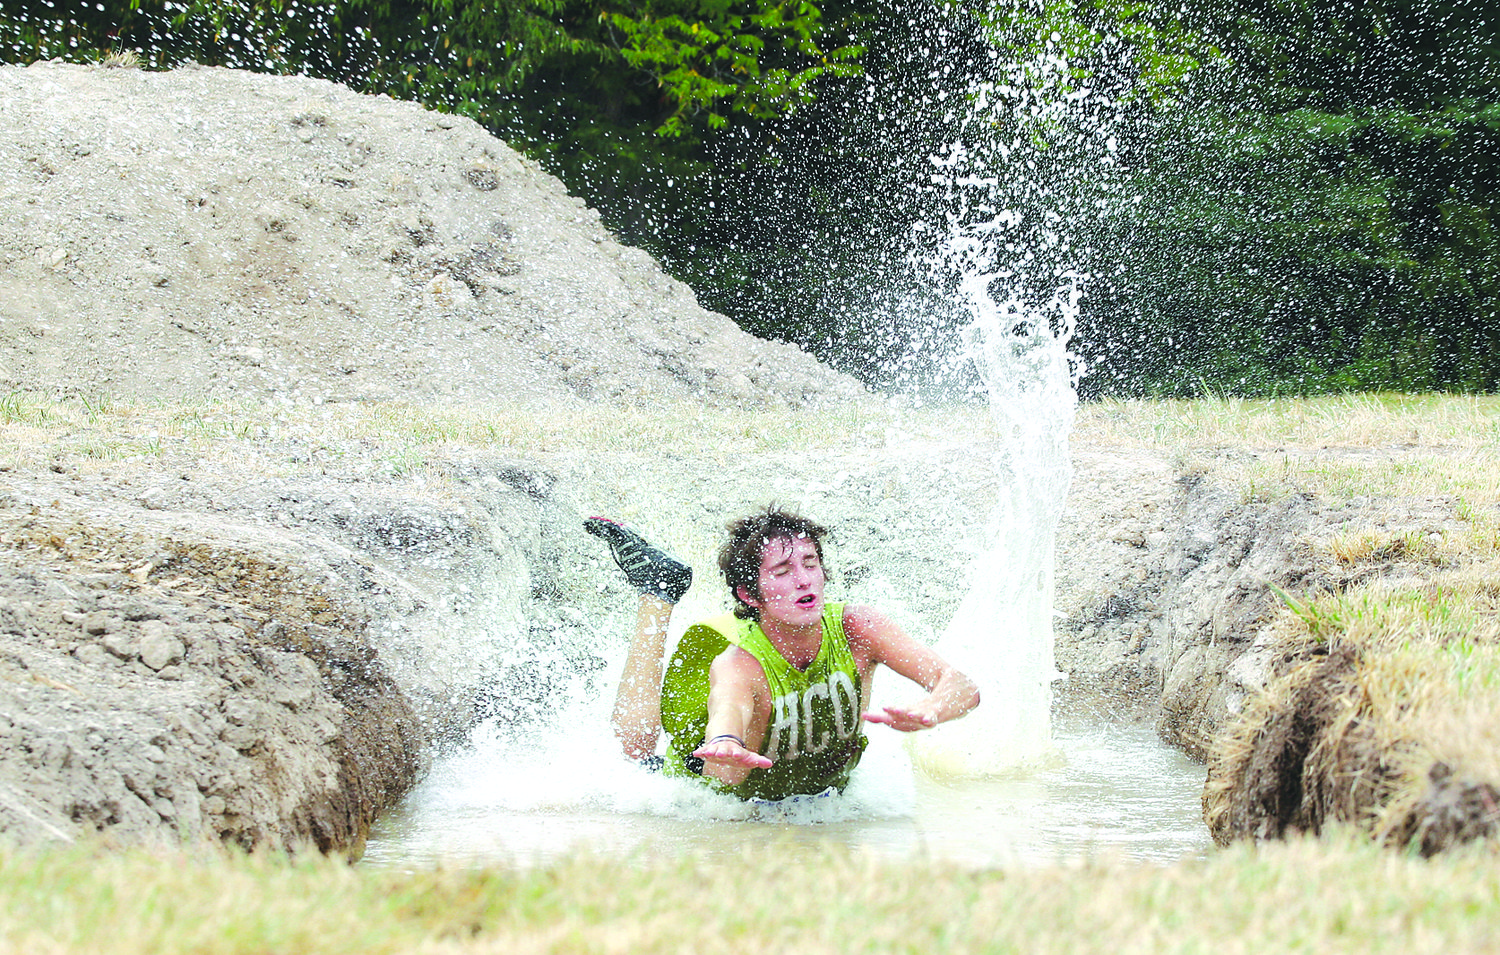 Since it's inaugural run in 2012, the Big Dawg Dare 5K mud run has made quite the splash in Litchfield, drawing in more than 4,000 competitors wishing to test their abilities, as Austin Bushue of Effingham did eight years ago. With COVID-19 restrictions expected to last through the summer, the Big Dawg Dare board of directors were forced to cancel this year's race and opted to end the event after eight successful years.